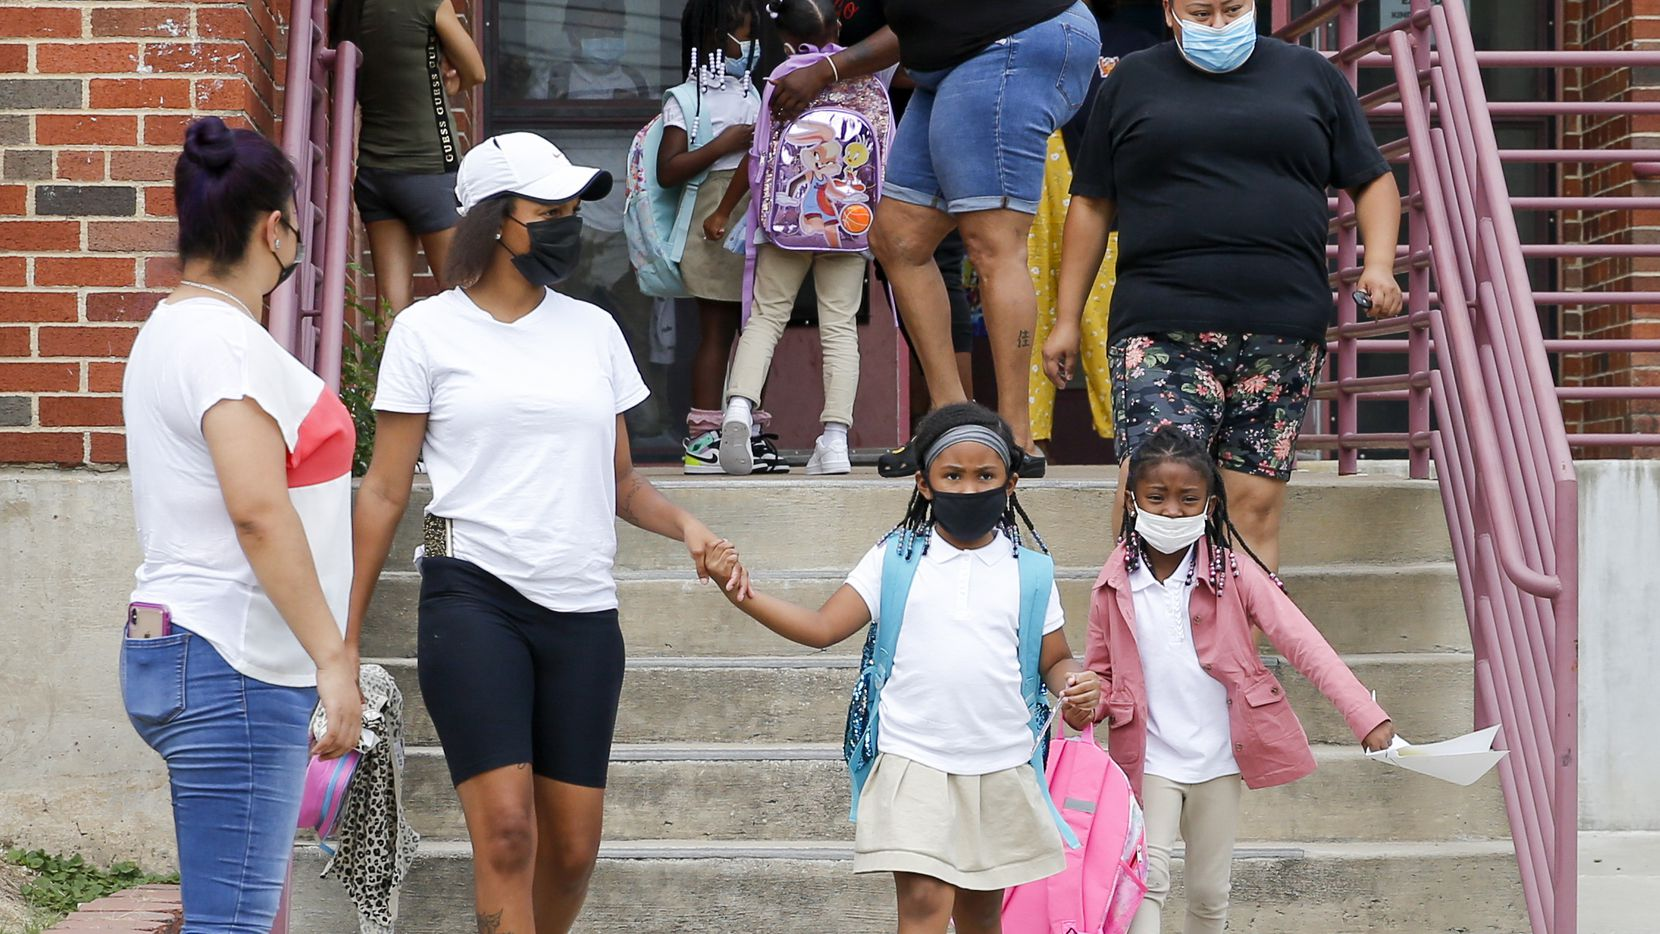 Parents pick up their children after school at Paul L. Dunbar Learning Center on Wednesday, Sept. 8, 2021, in Dallas. (Elias Valverde II/The Dallas Morning News)